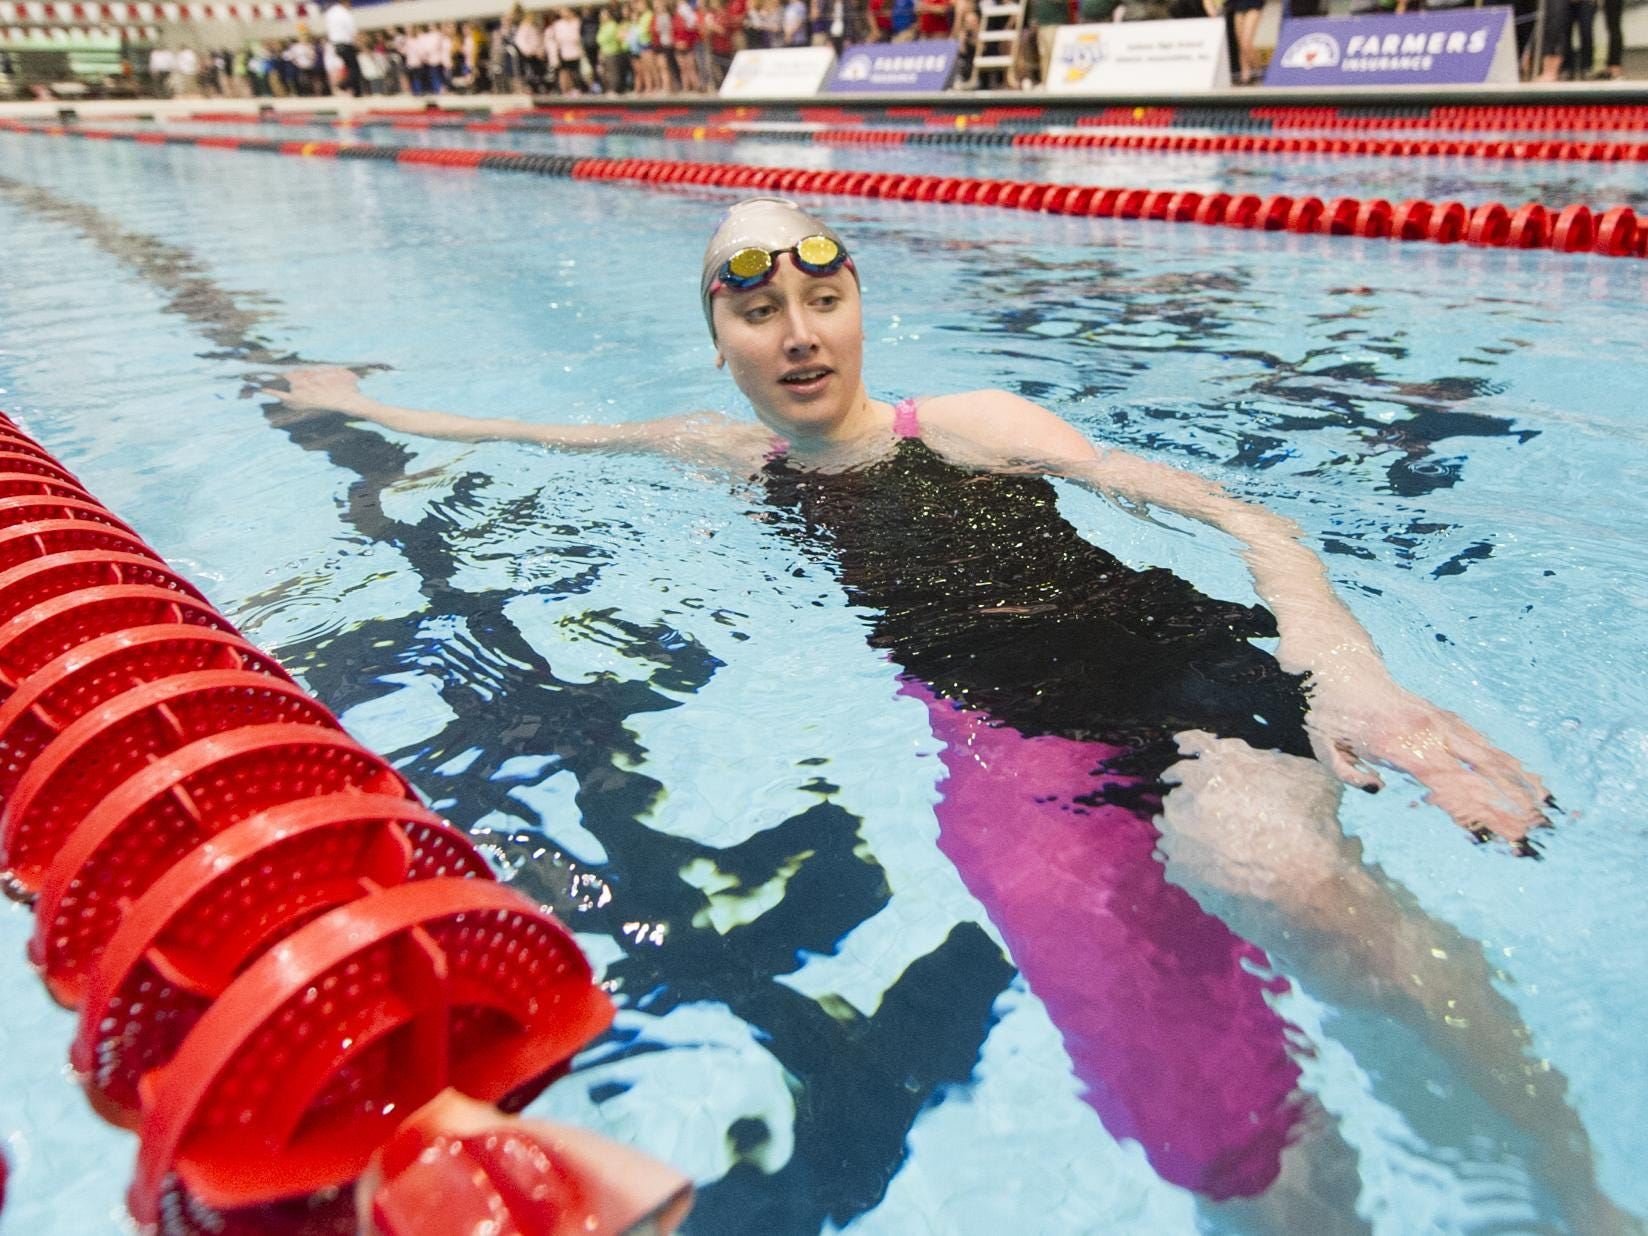 Carmel's Amy Bilquist cools down in the pool after winning the 100 Yard Freestyle event at 41st Annual IHSAA Girl's Swimming and Diving State Finals, Feb. 14, 2015, at IUPUI Natatorium in Indianapolis.